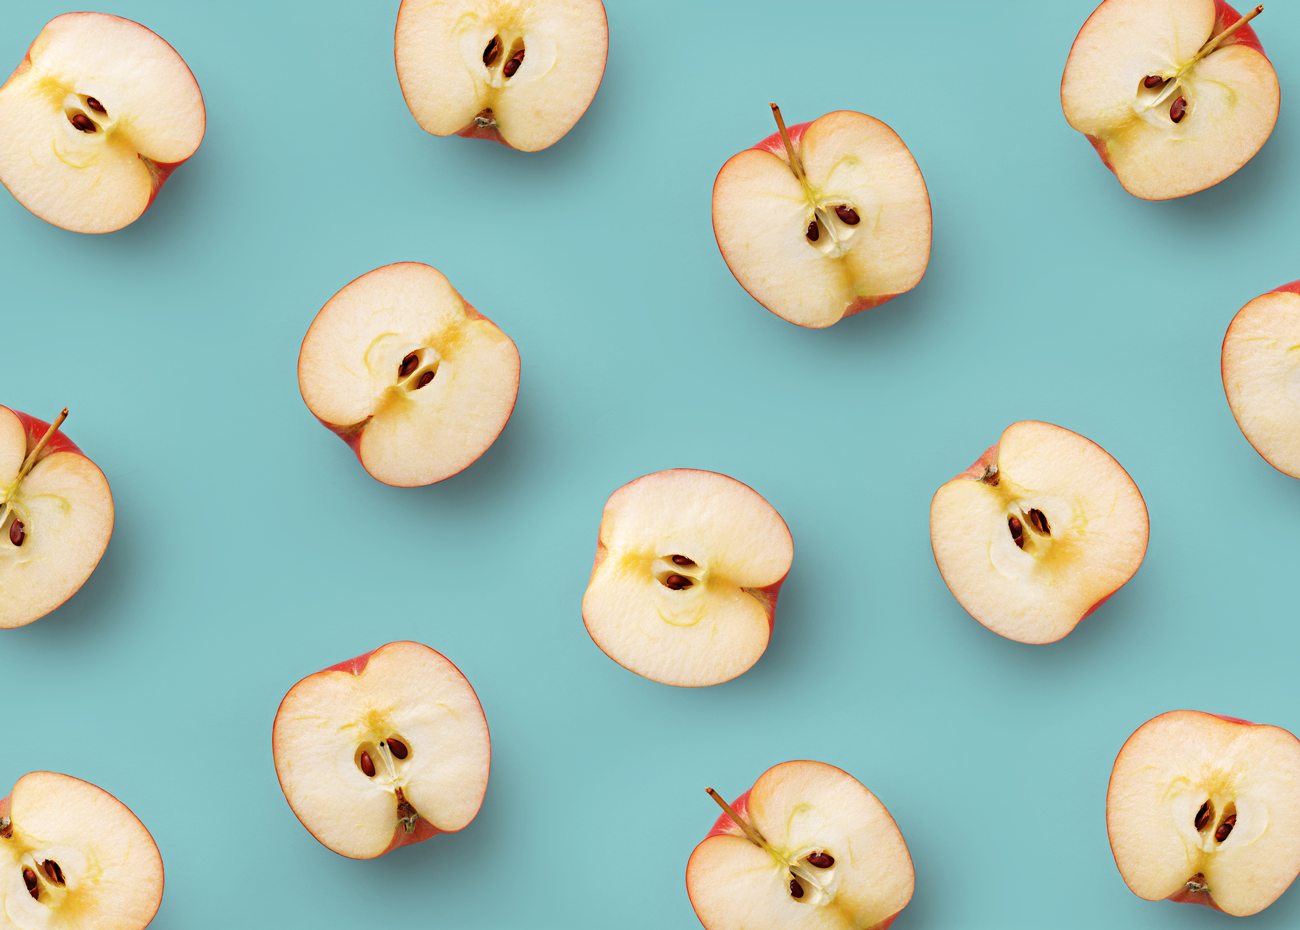 Apple Halves on Colorful Background